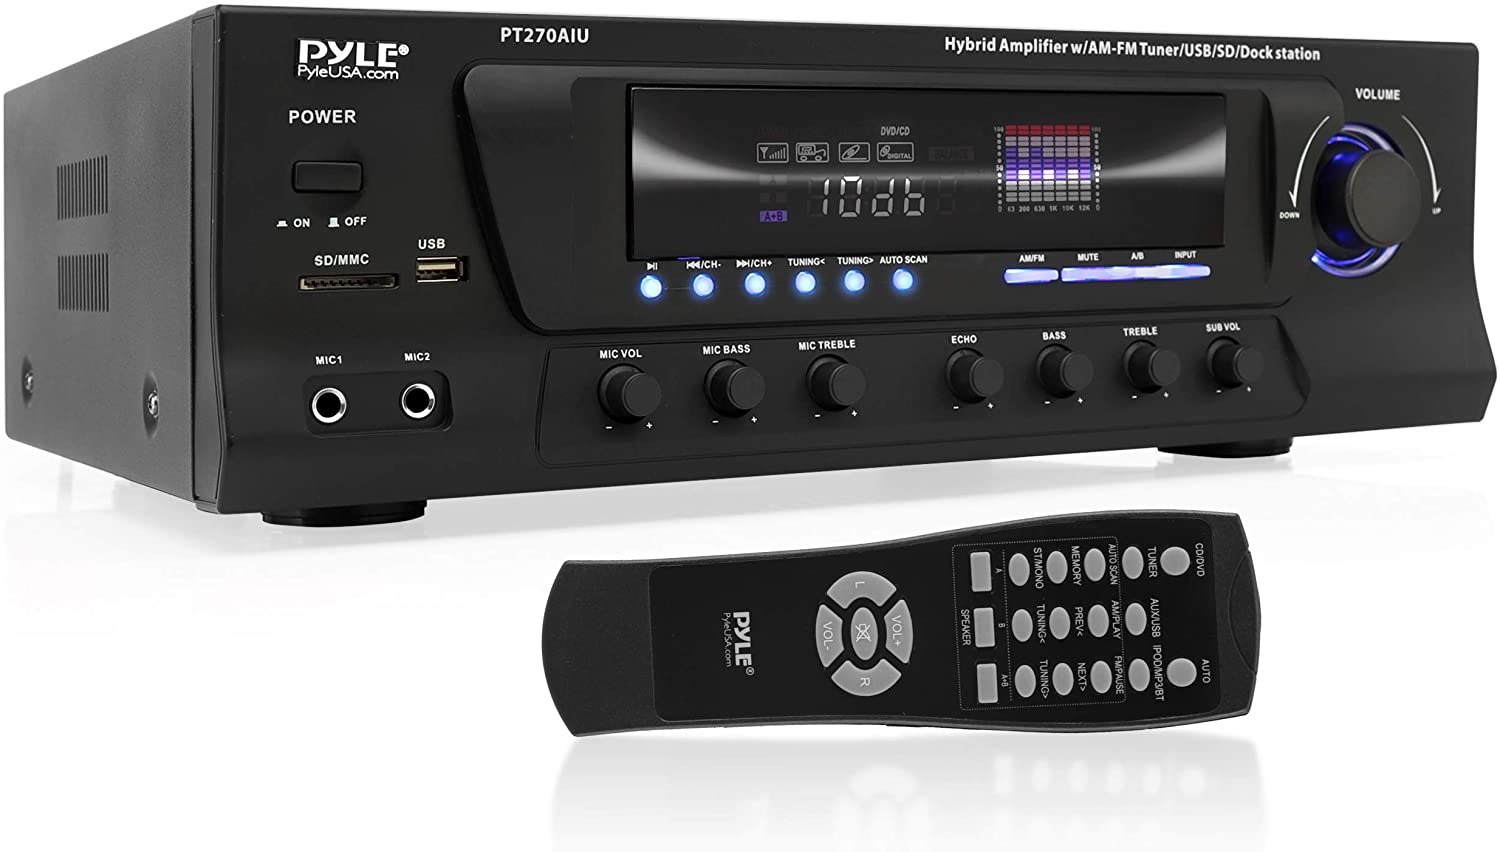 3. Pyle Home PT270AIU 300-Watt Stereo Receiver AM-FM Tuner, USB/SD, iPod Docking Station and Subwoofer Control